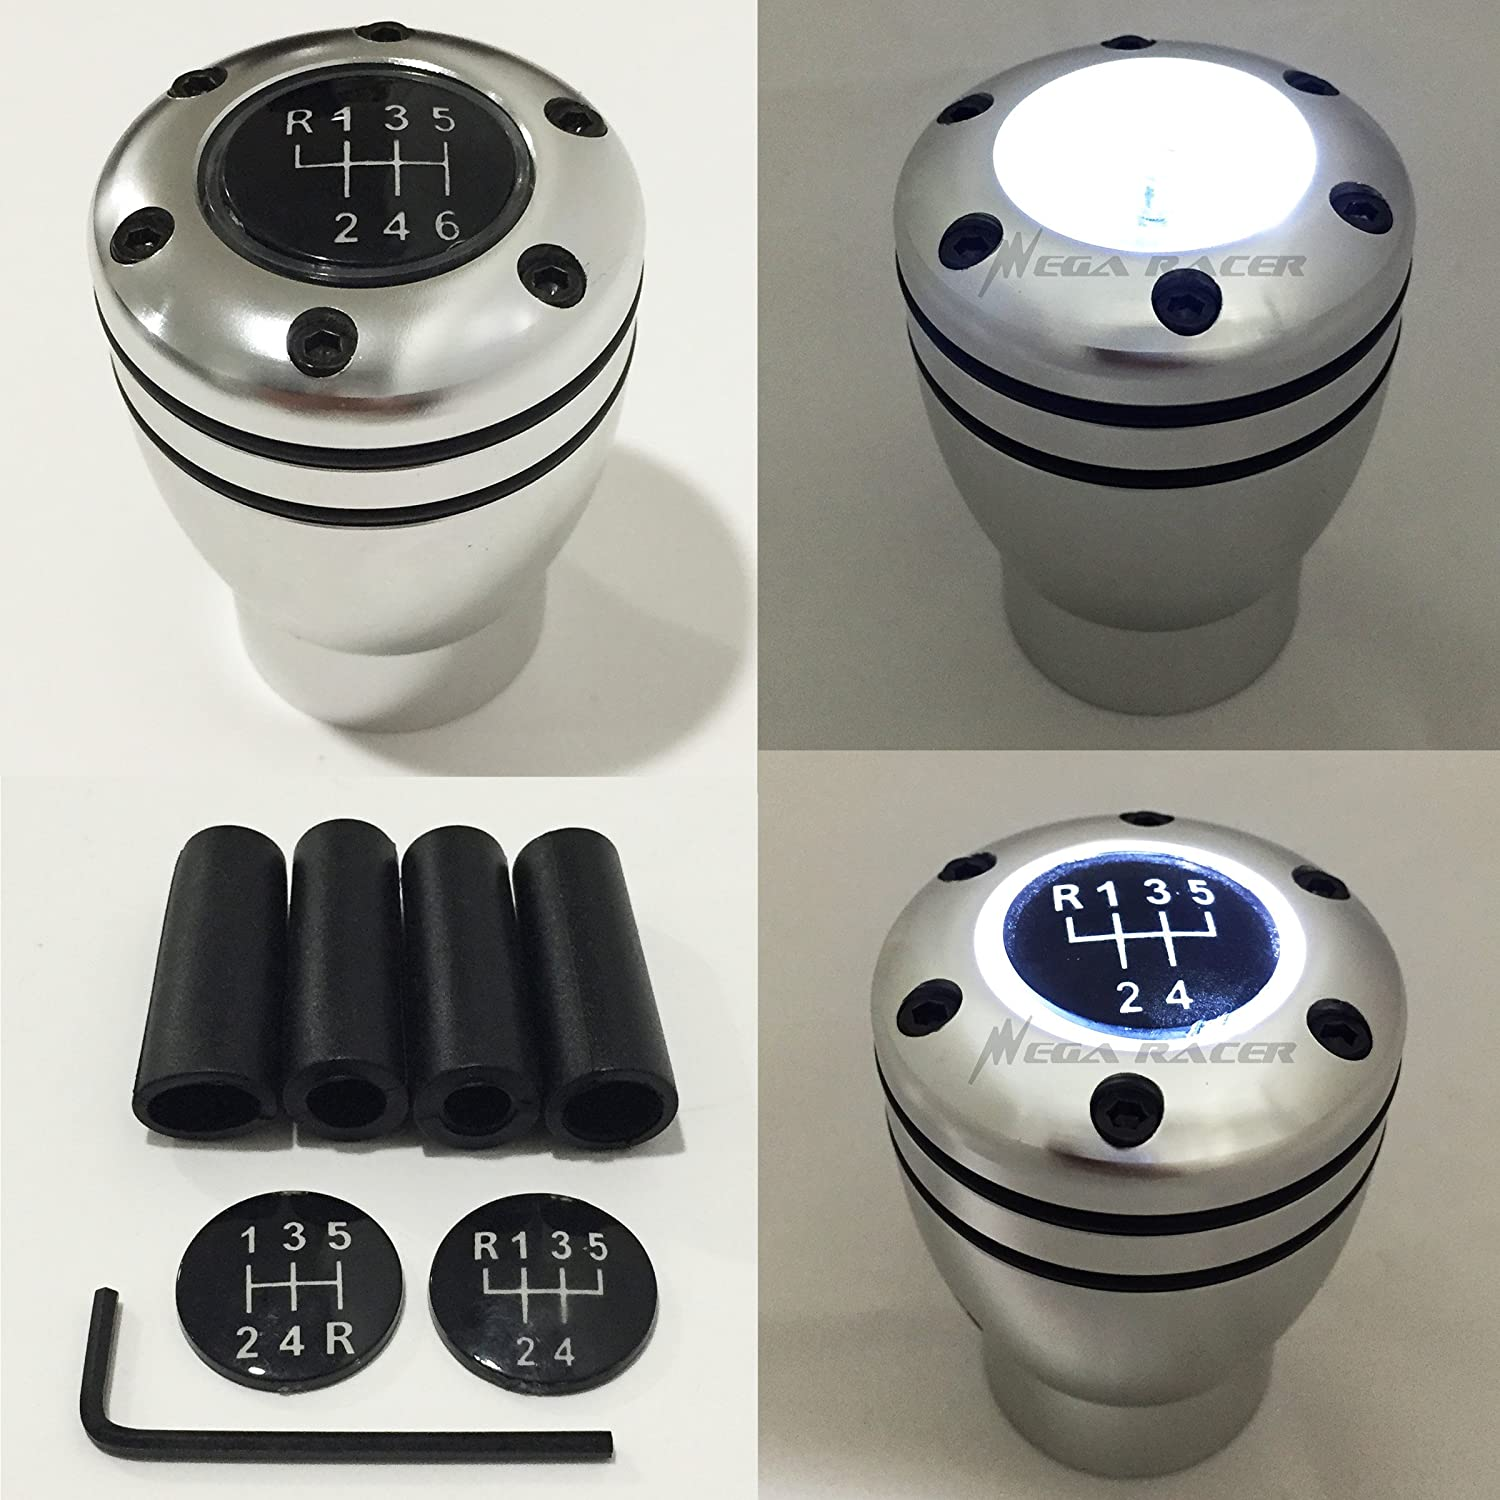 Manual Transmission Speed 5 6 WHITE LED Light Silver Sport Gear Stick Shift Knob JDM Style Auto US Shifter Console Lever Mega Racer